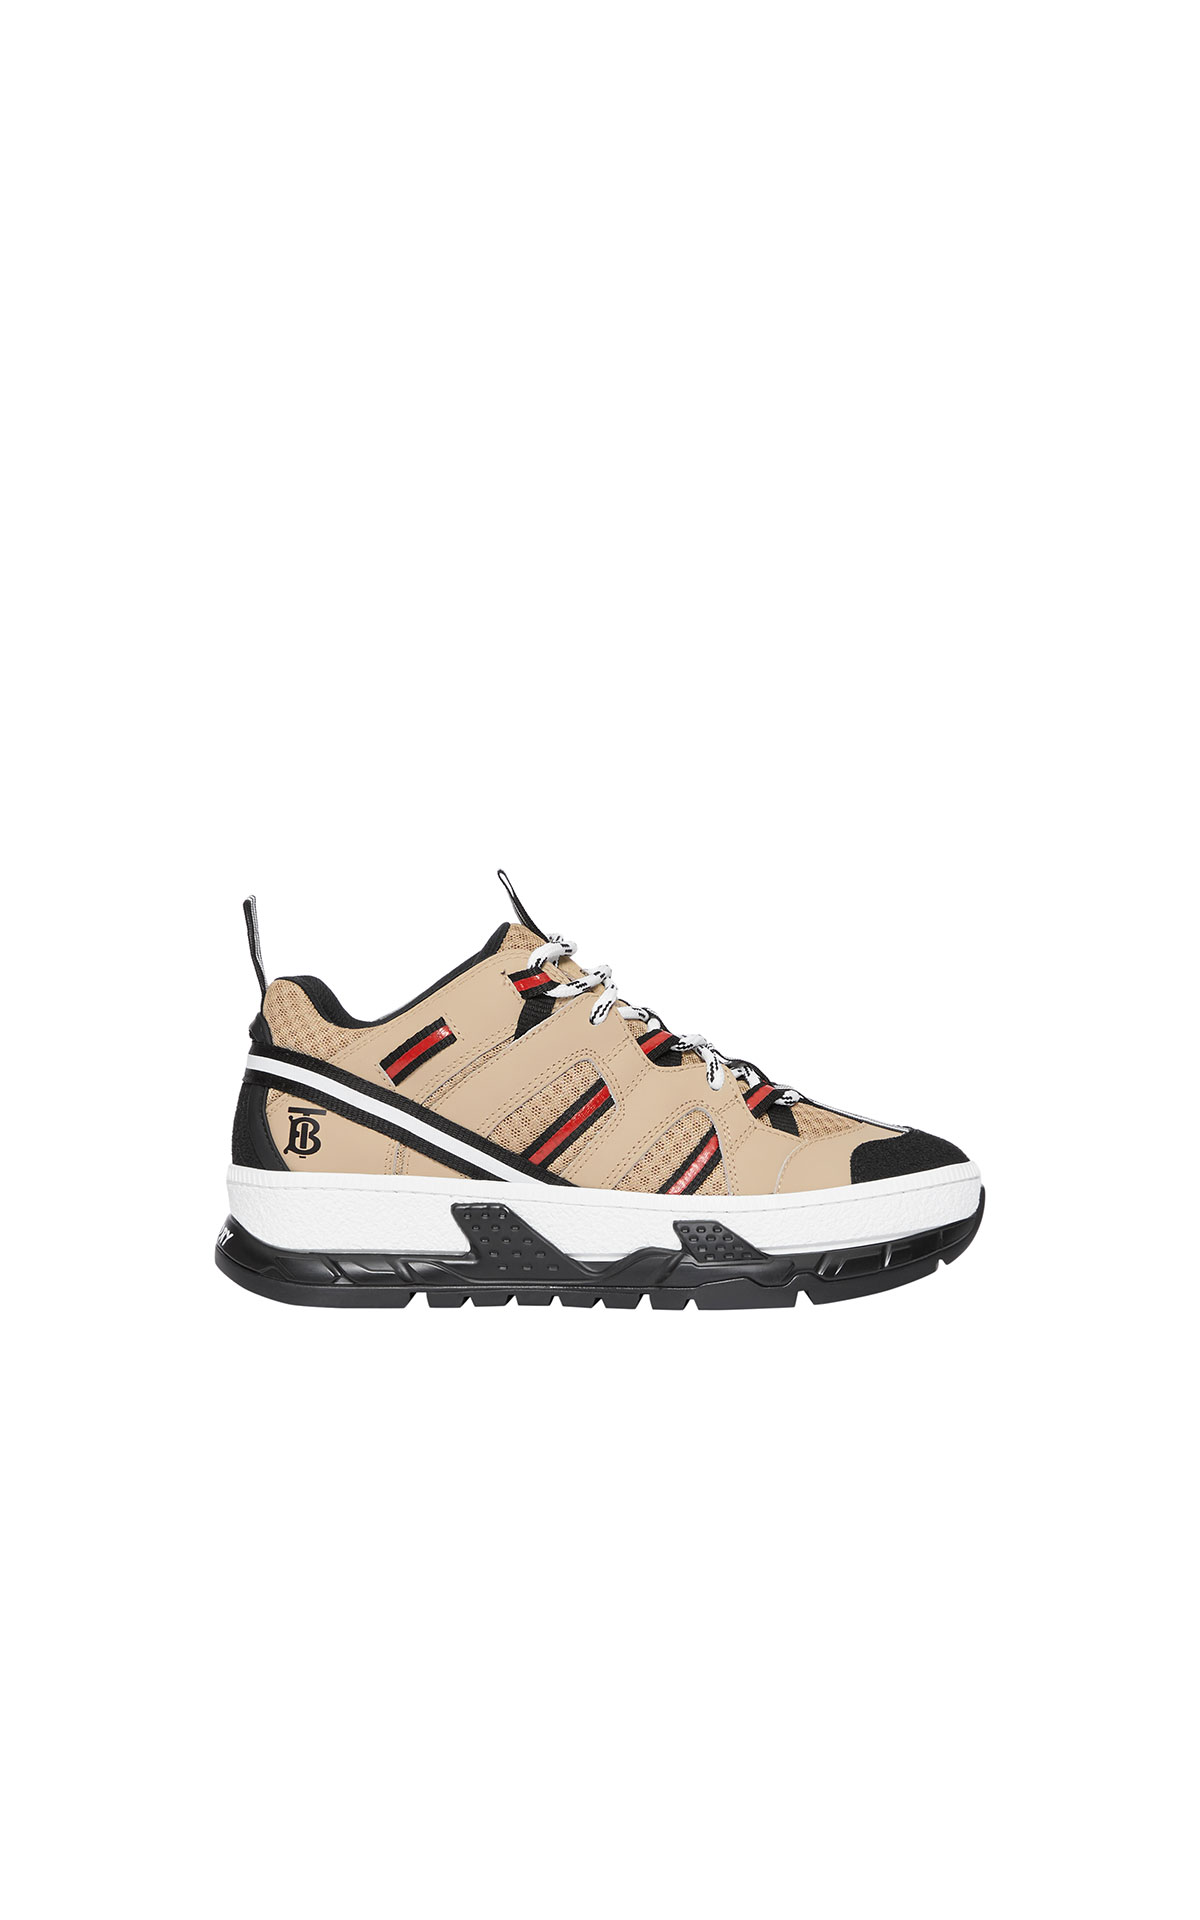 Burberry Women's TB trainers from Bicester Village